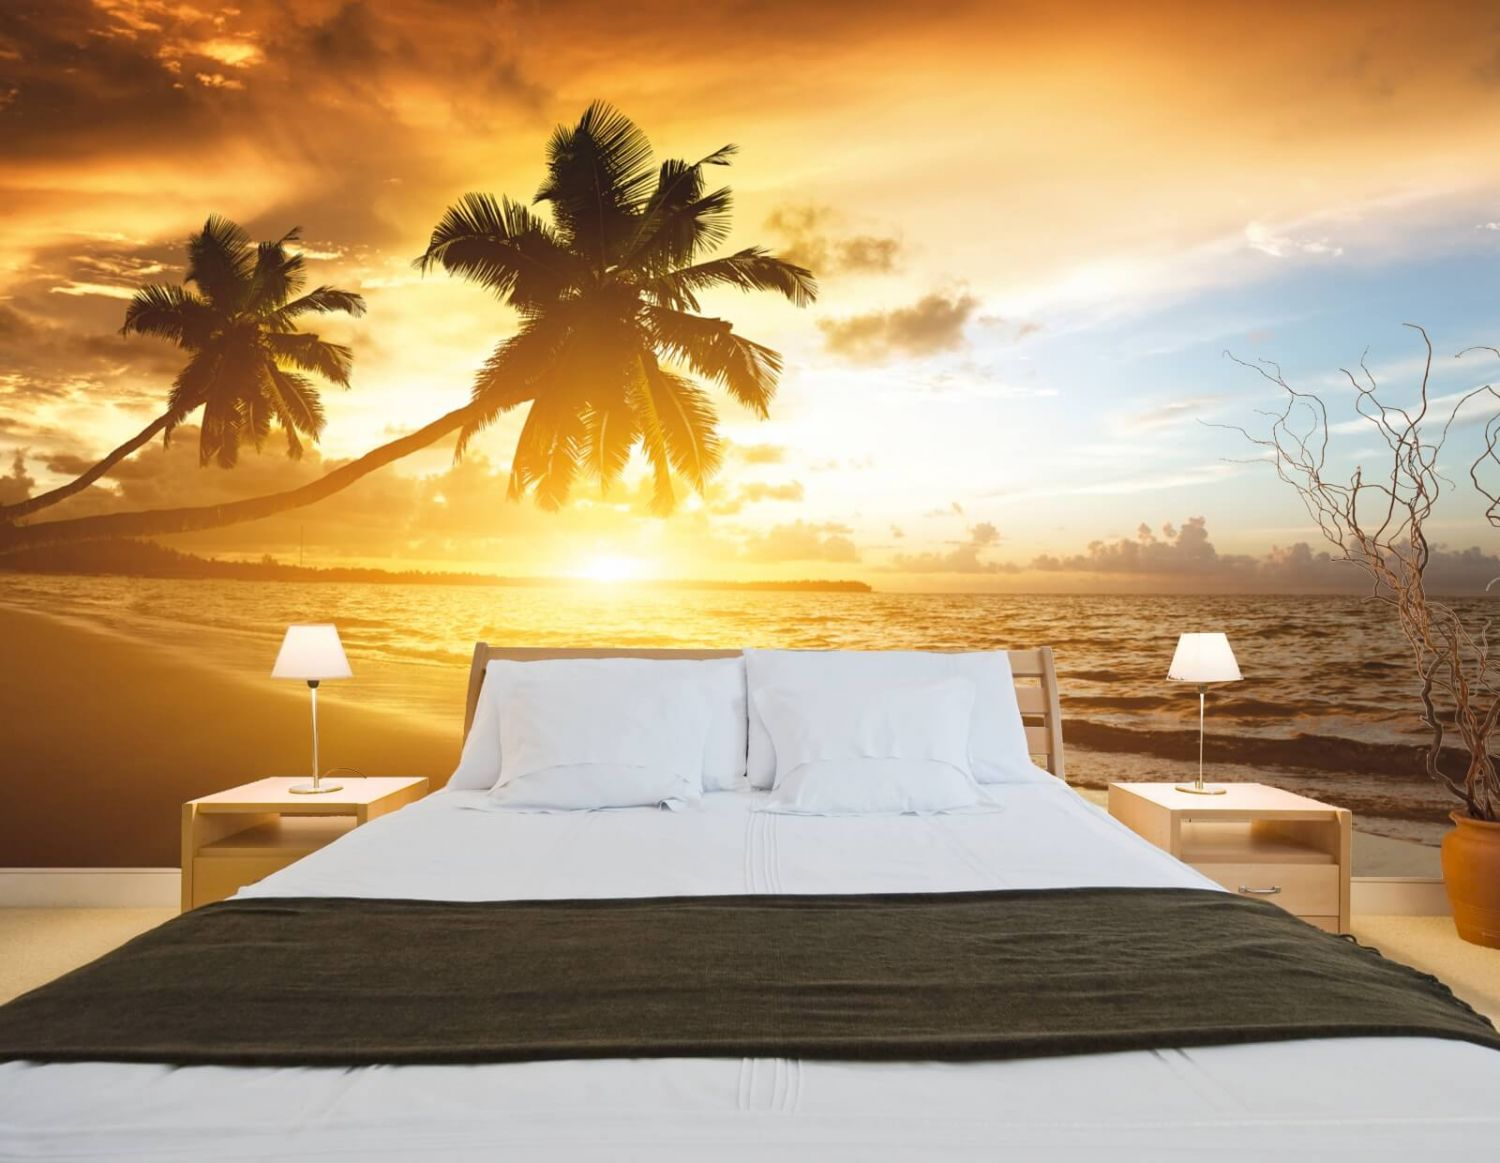 xxl poster fototapete tapete vlies natur palmen im sonnenuntergang ebay. Black Bedroom Furniture Sets. Home Design Ideas